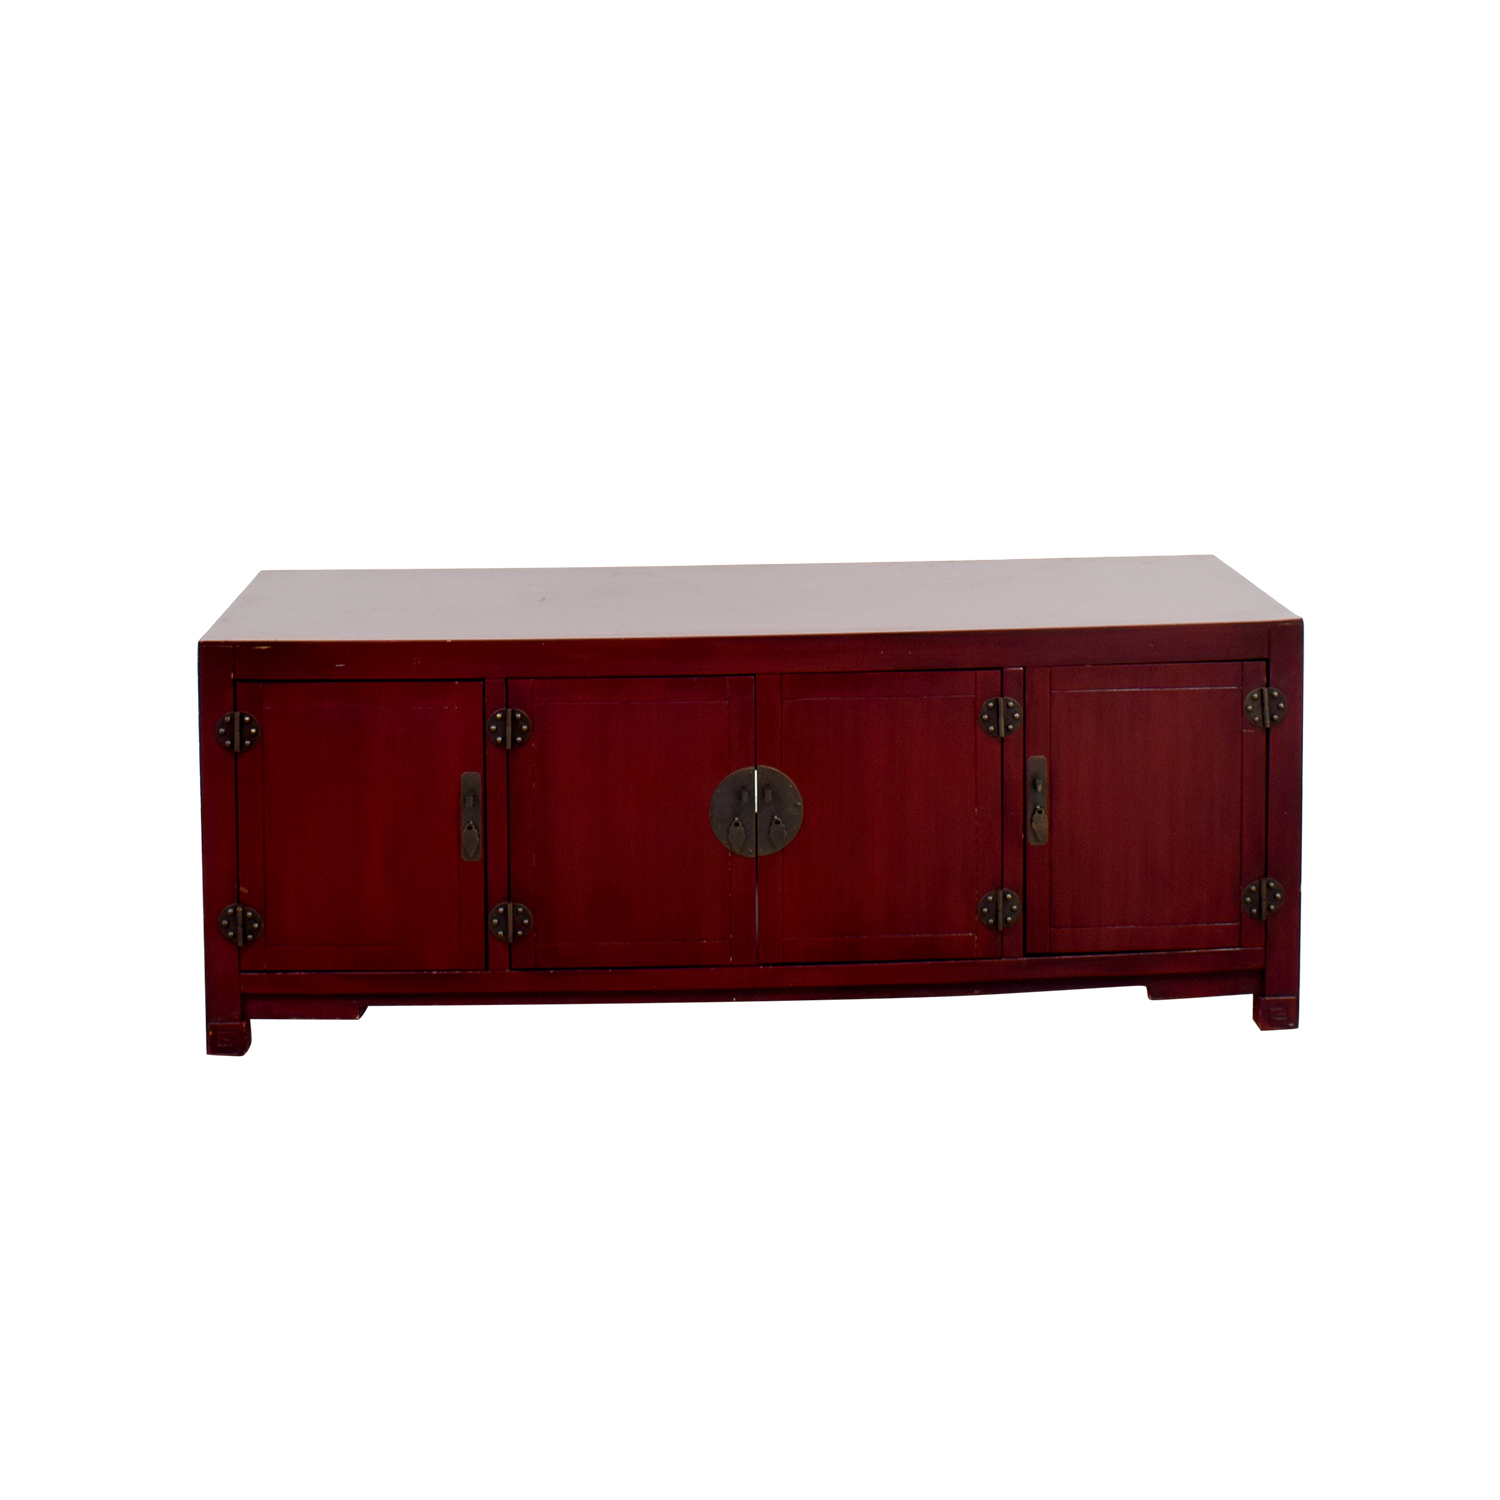 OFF Pier Pier Mei Antique Red TV Stand Storage - Pier 1 tv console table